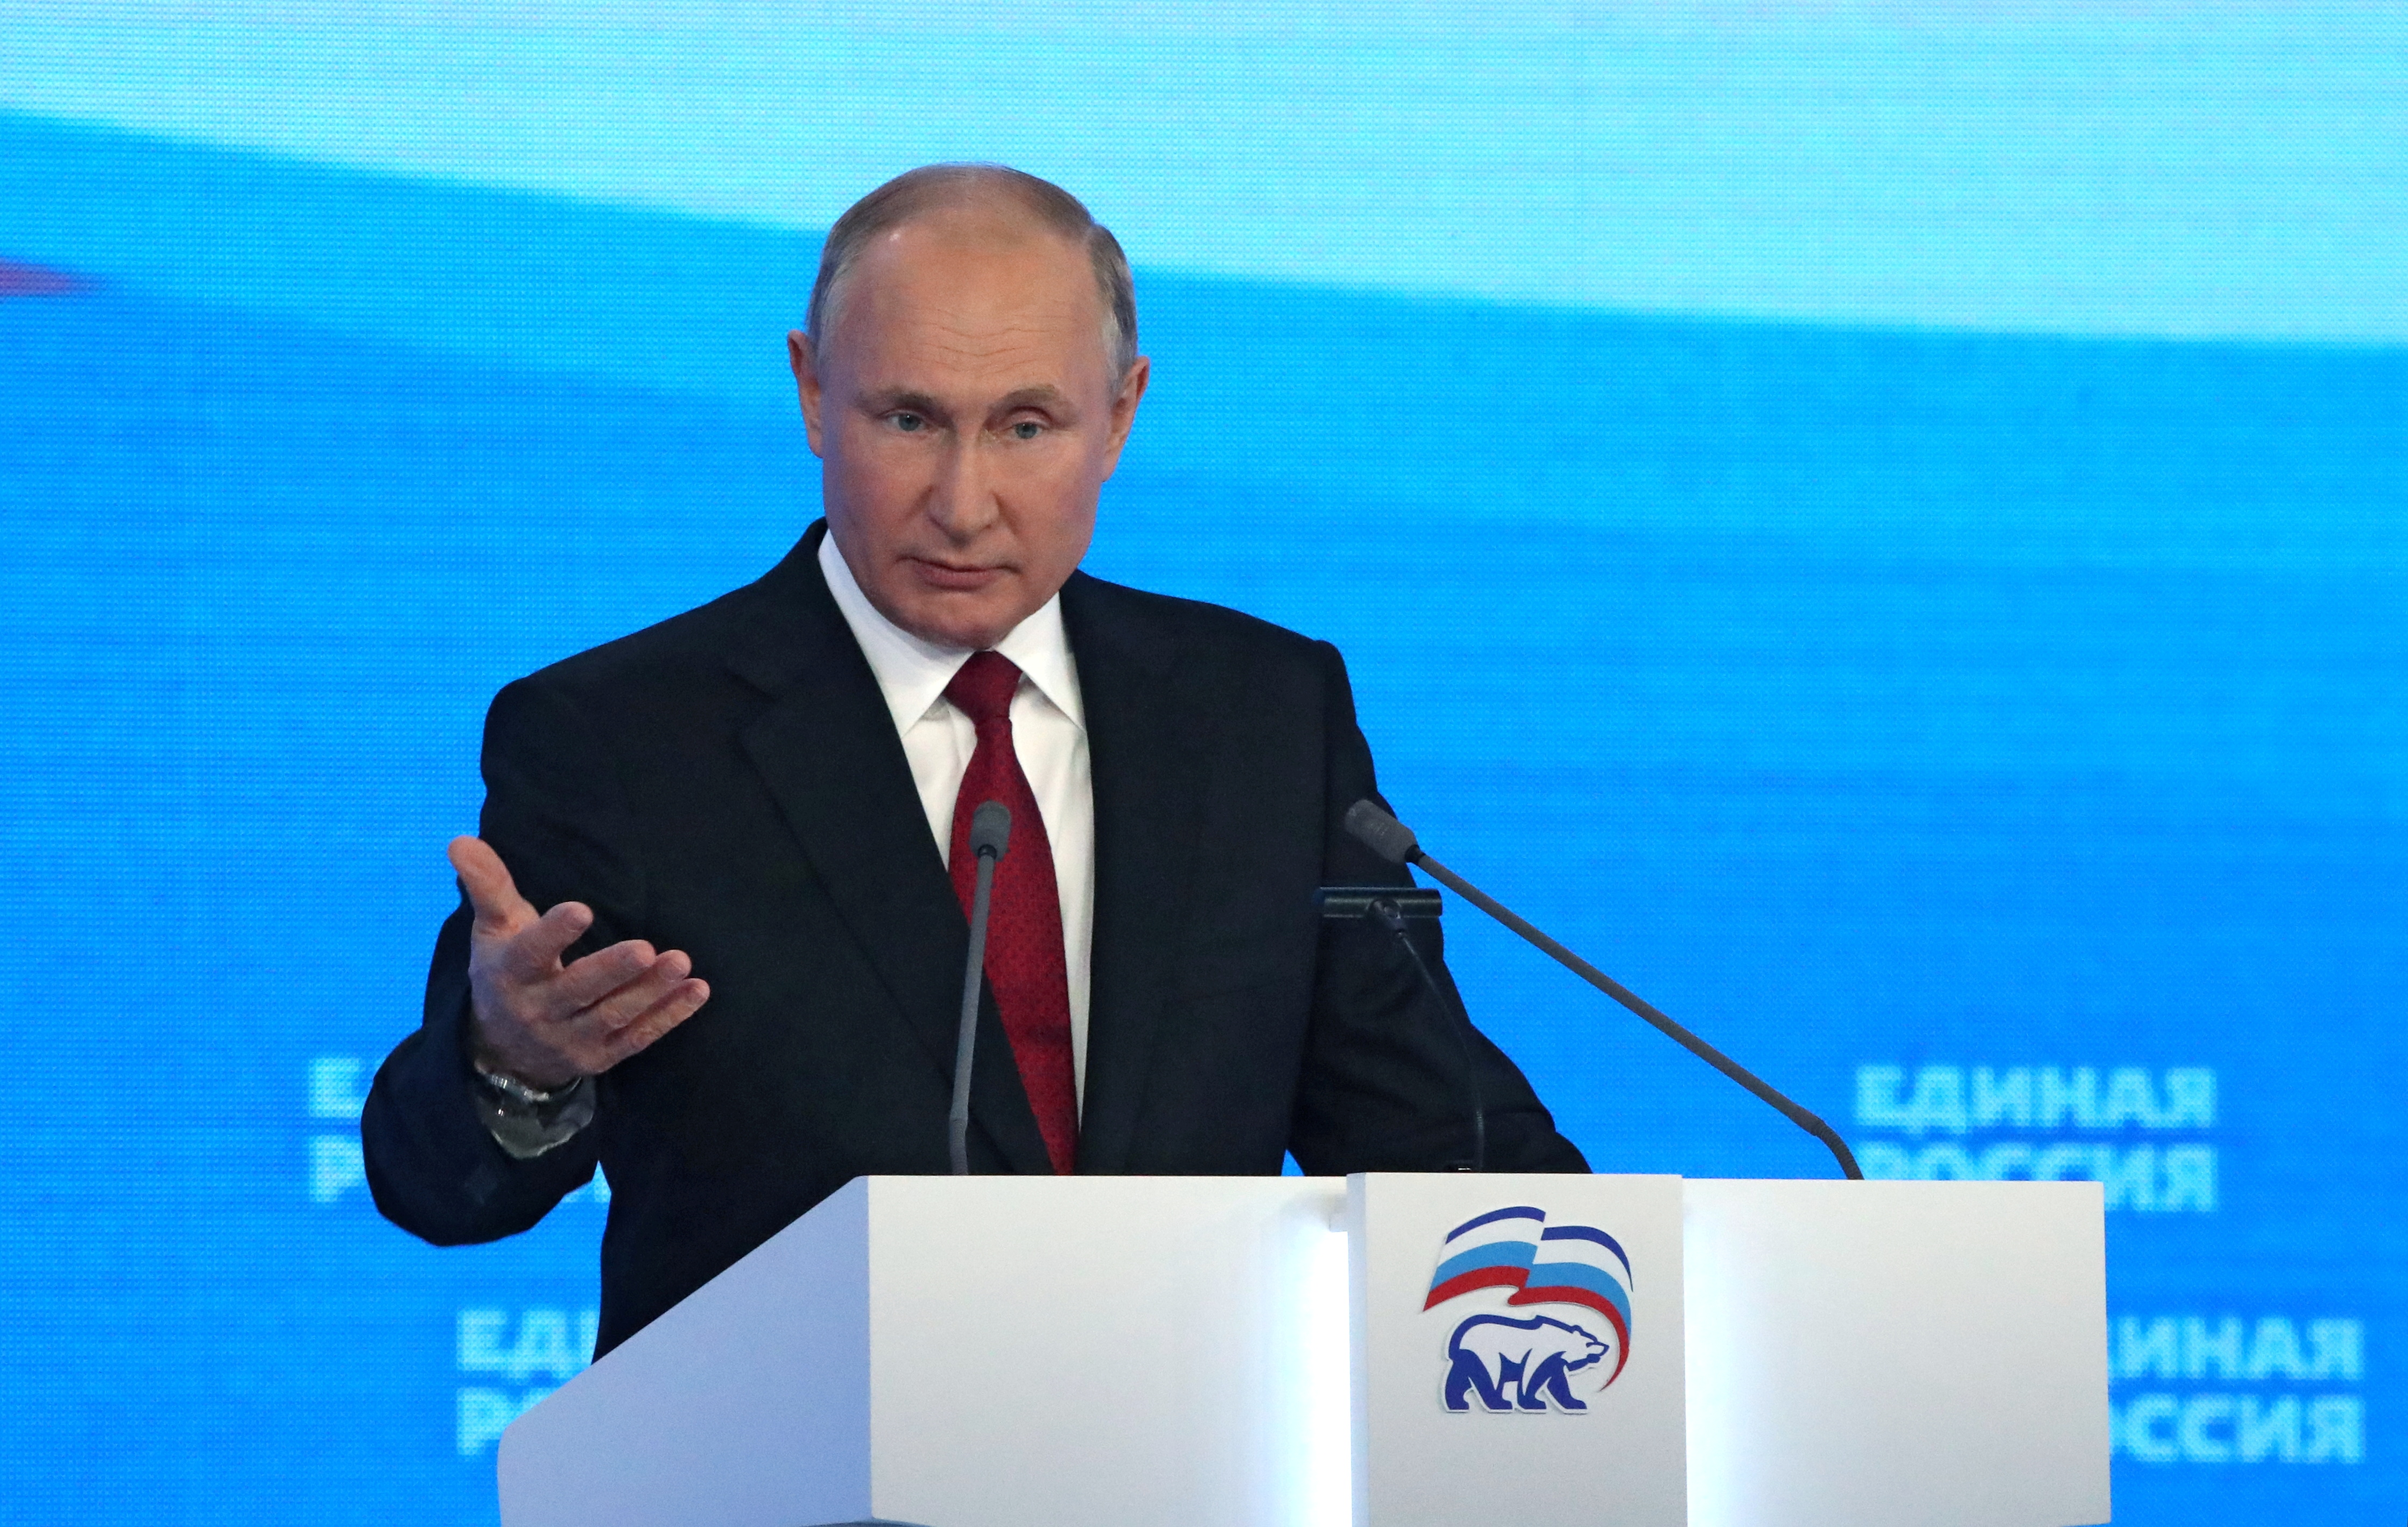 Russian President Vladimir Putin addresses the audience during the annual congress of the United Russia party in Moscow, Russia June 19, 2021. Sputnik/Sergei Karpukhin/Pool via REUTERS